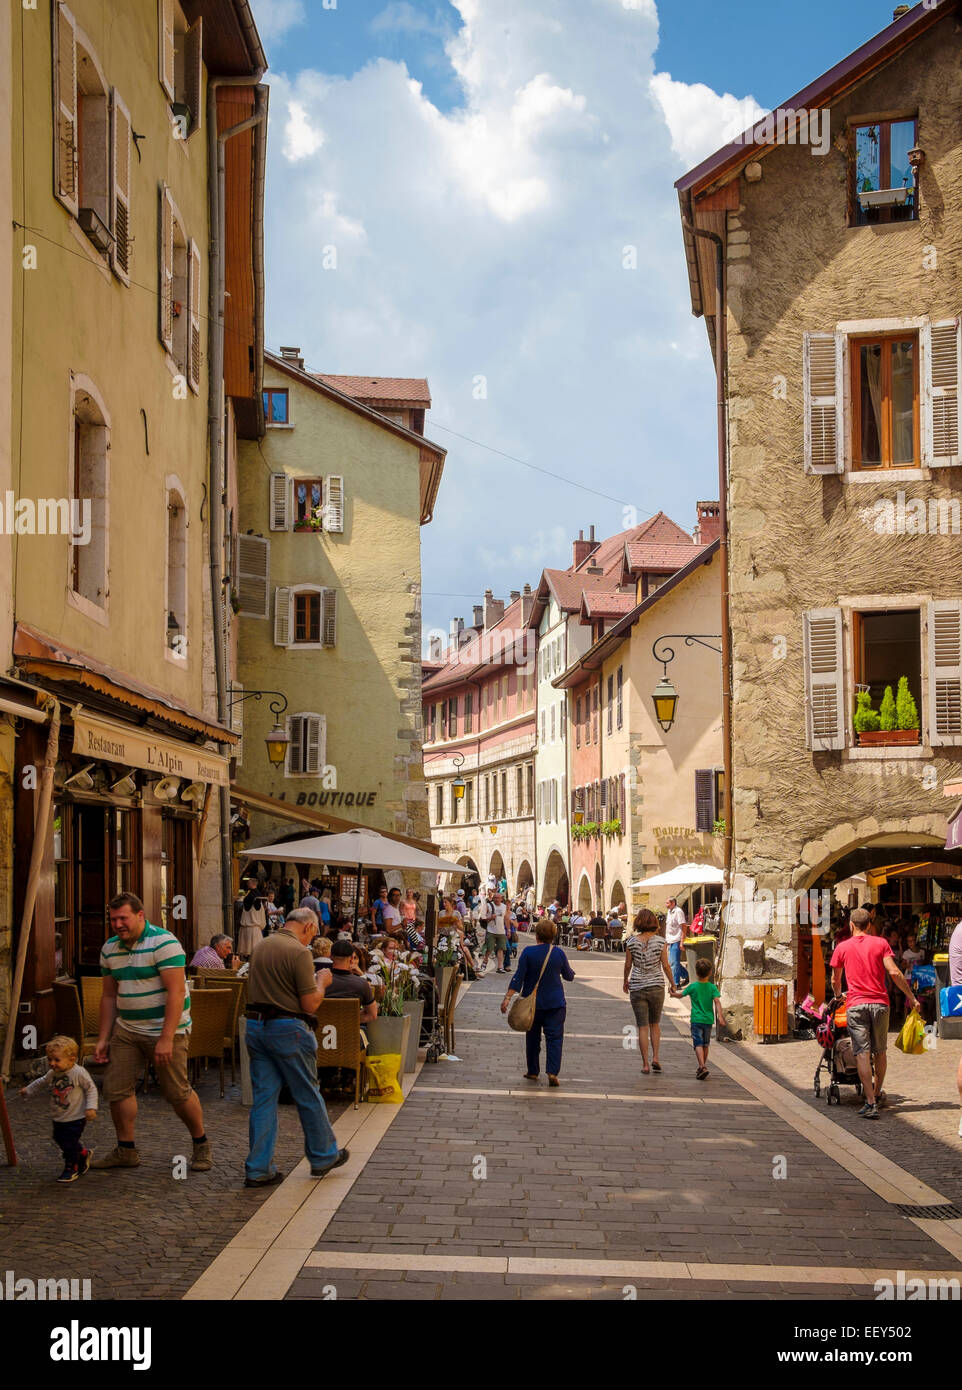 Old streets in Annecy, Haute-Savoie, France Stock Photo